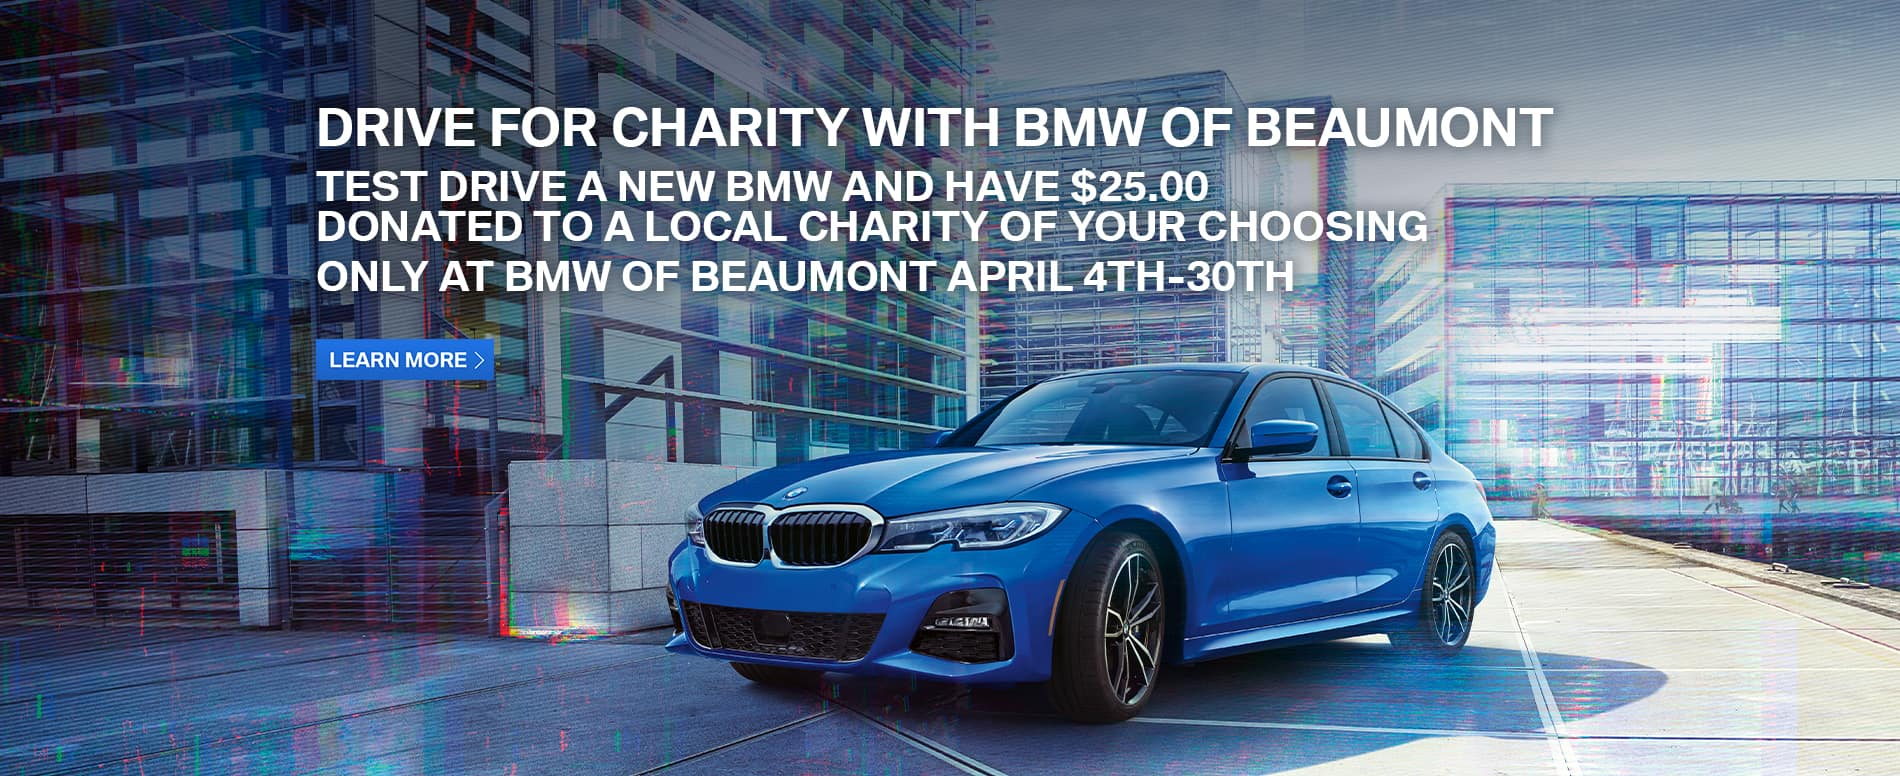 drive-for-charity-with-bmw-of-beaumont-april-2019